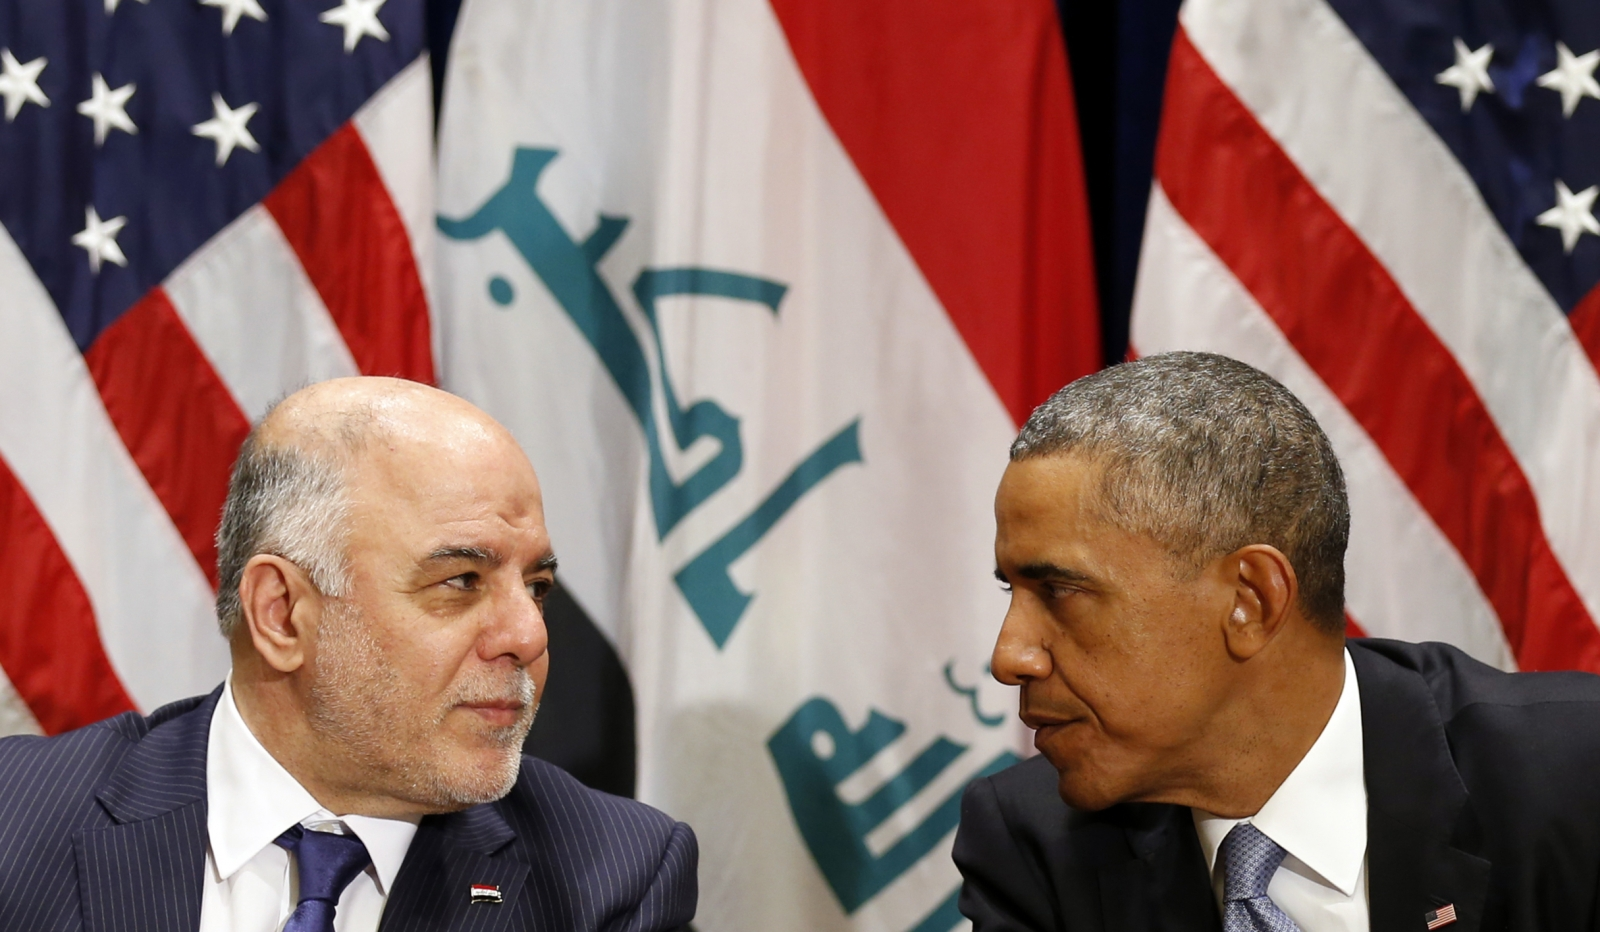 U.S. President Barack Obama meets with Iraqi Prime Minister Haider al-Abadi during the United Nations General Assembly in New York